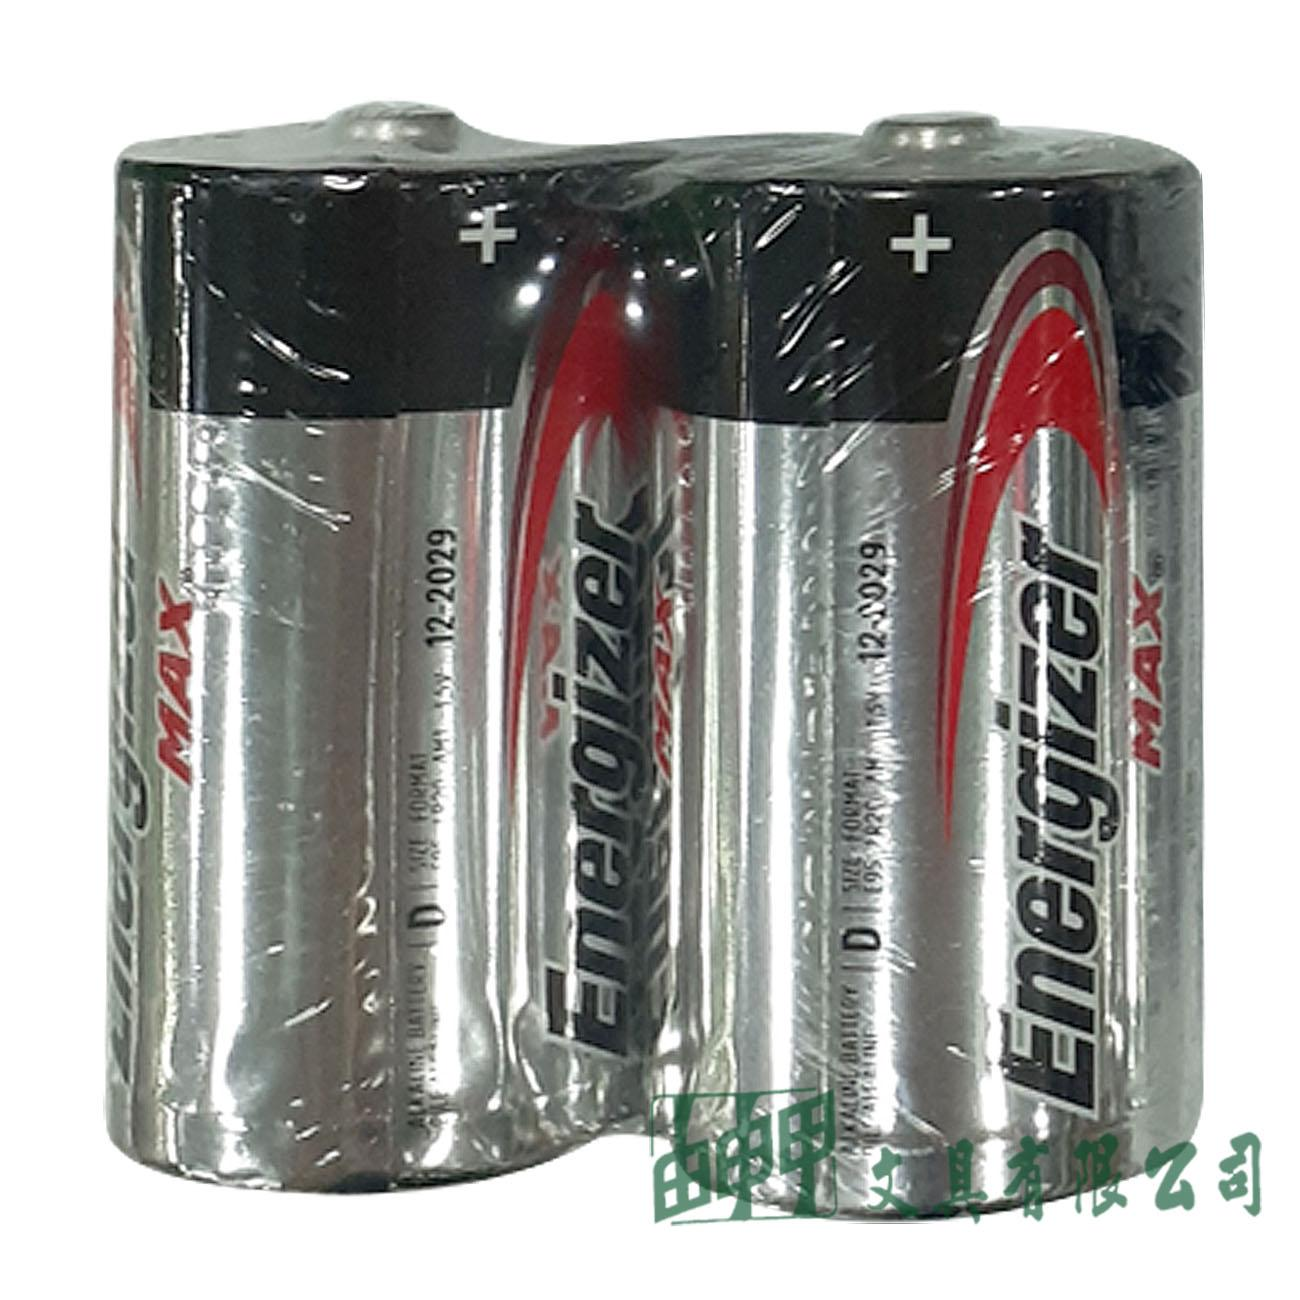 Energizer D1 勁量鹼性電池-1號